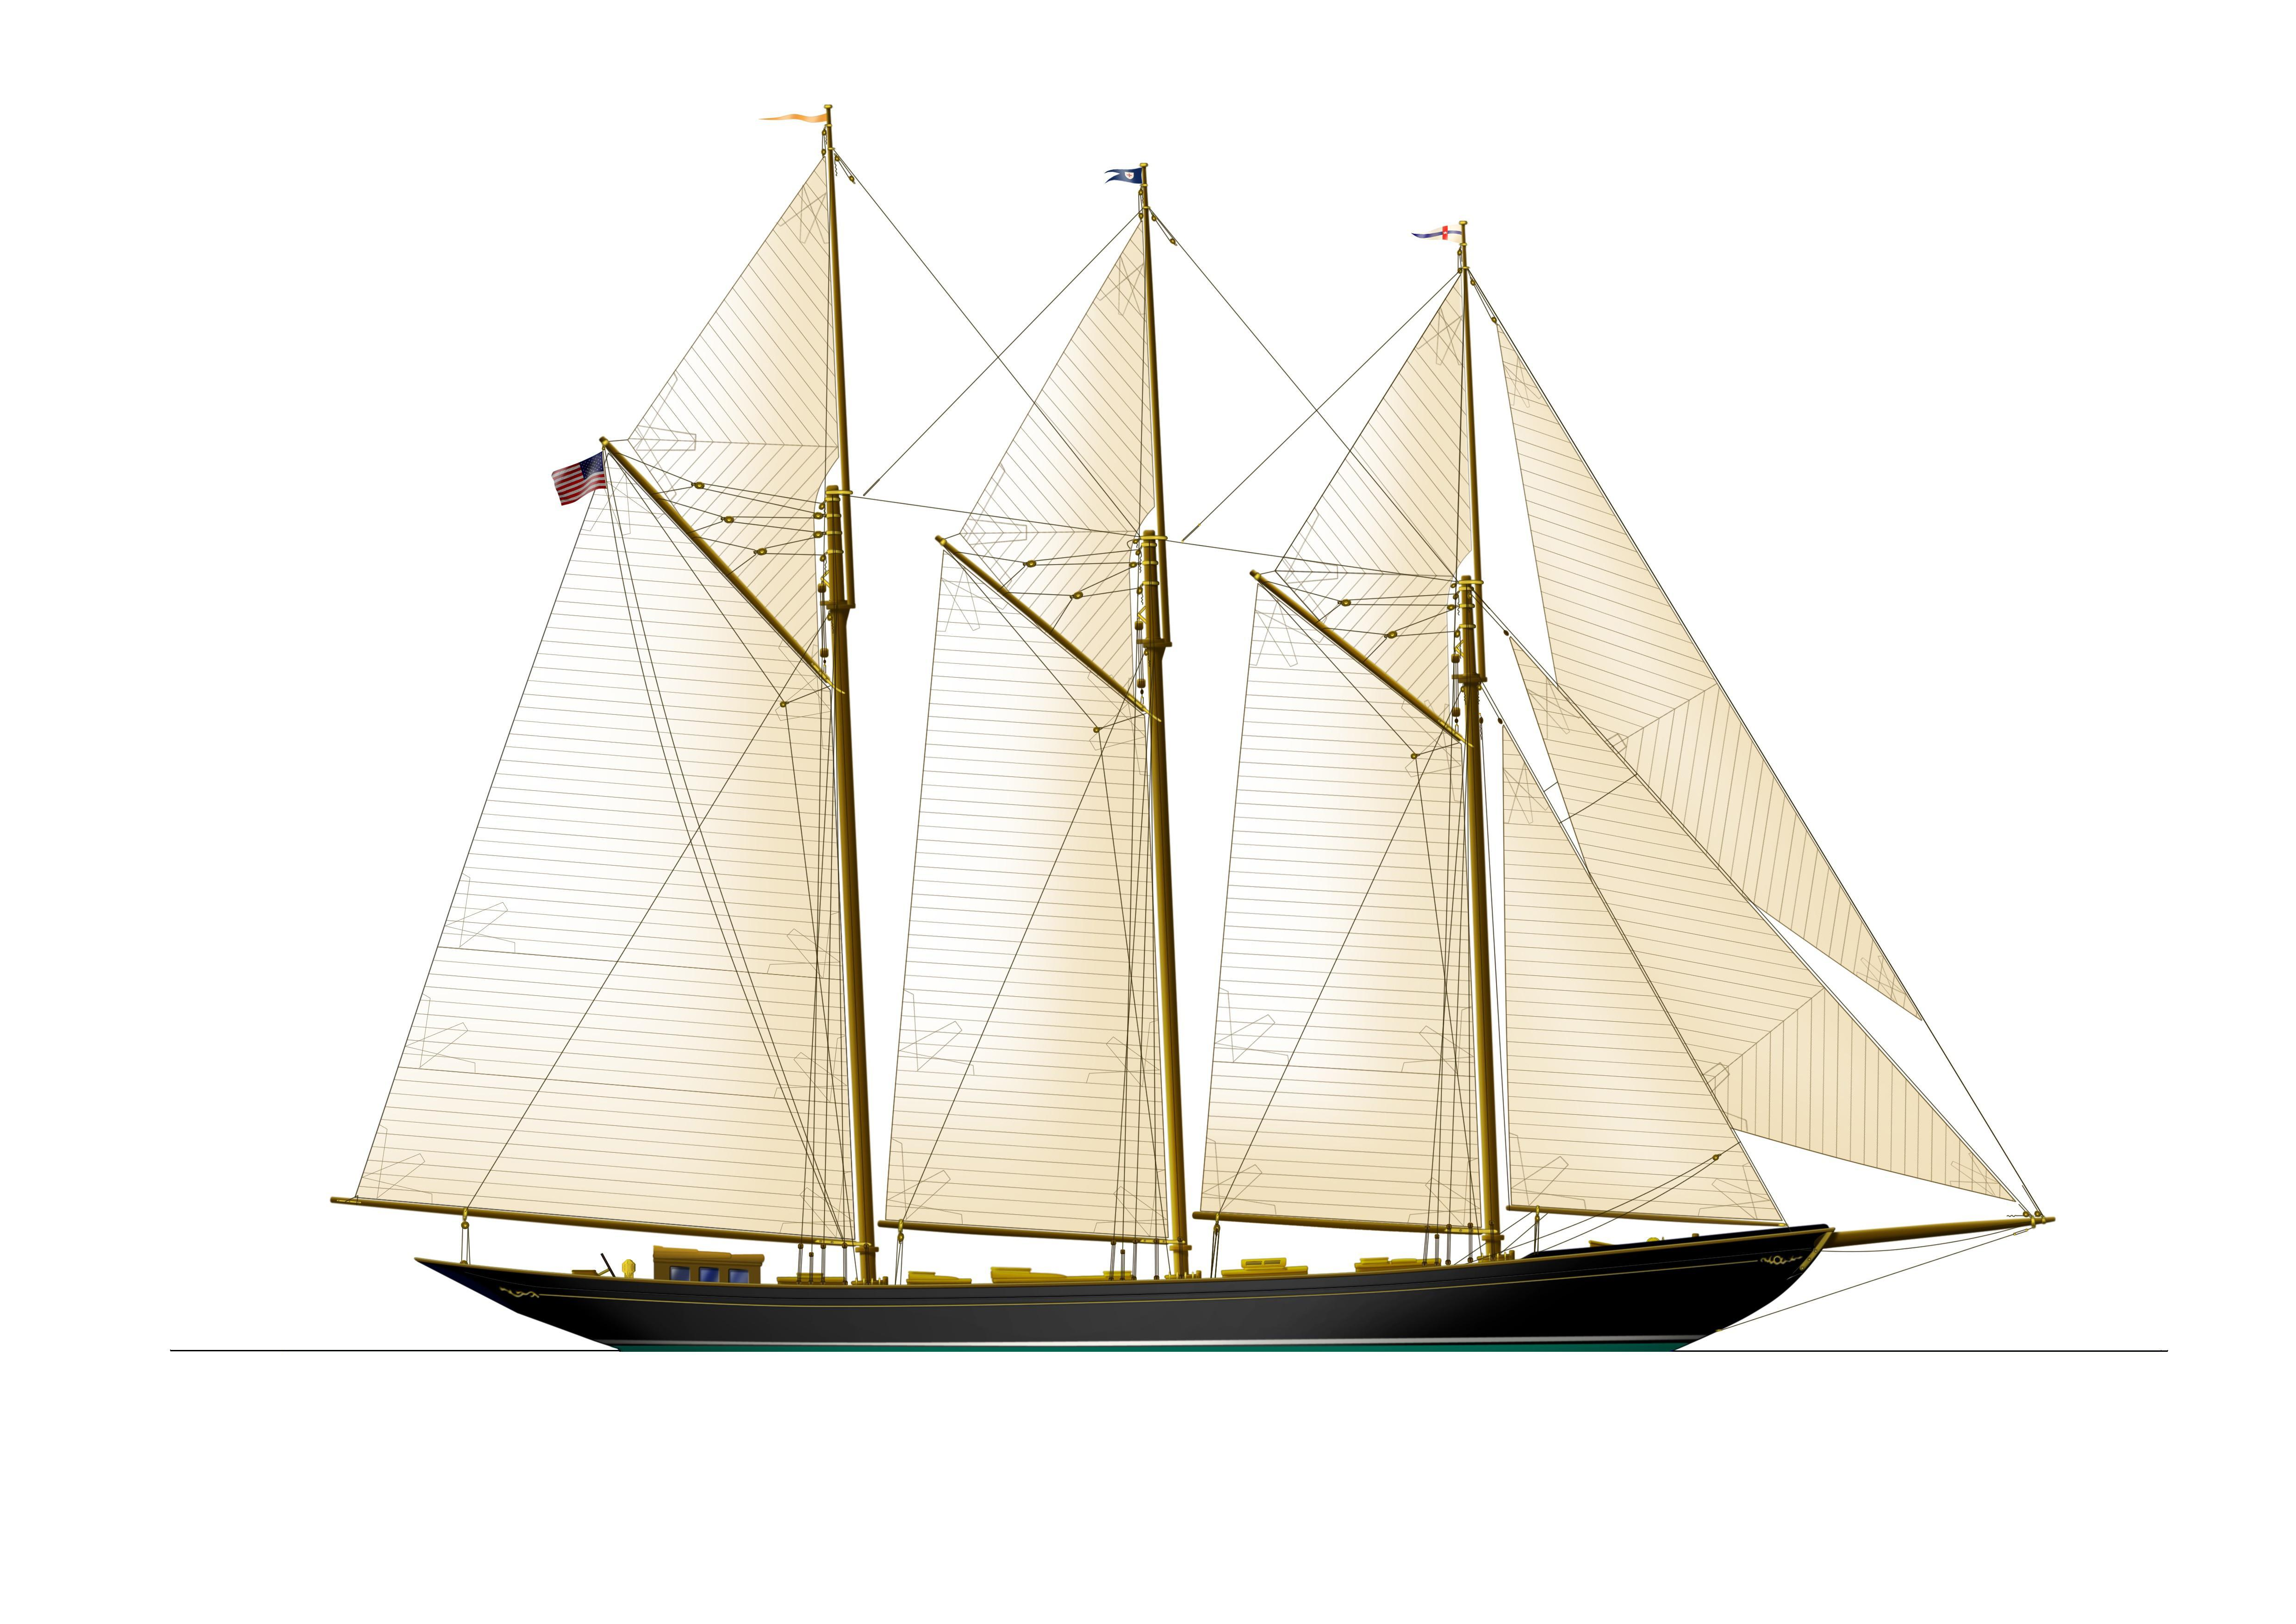 Schooner Wolfhound originally designed by John Alden